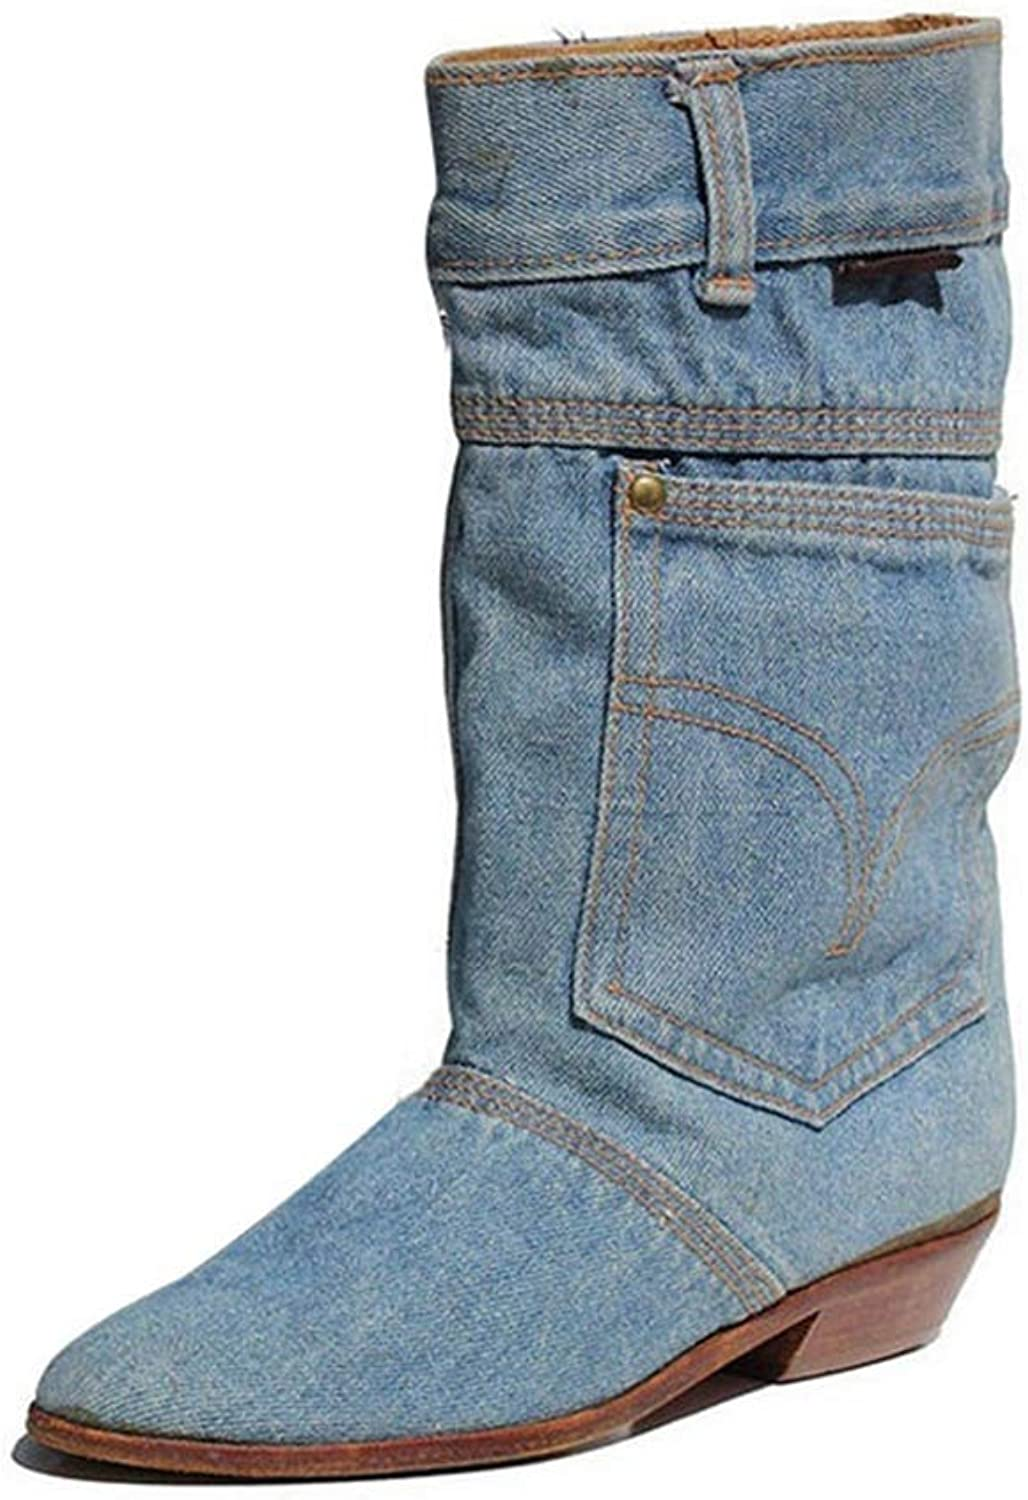 Wallhewb Fashion New Women Low Heel Casual Boots Ladies Mid Calf Jeans Leather Pointed Toe Cowboy Beautyfeet Big Size Boots Rubber Sole Reasing Leg Length Elegant Leg Length bluee 6 M US shoes